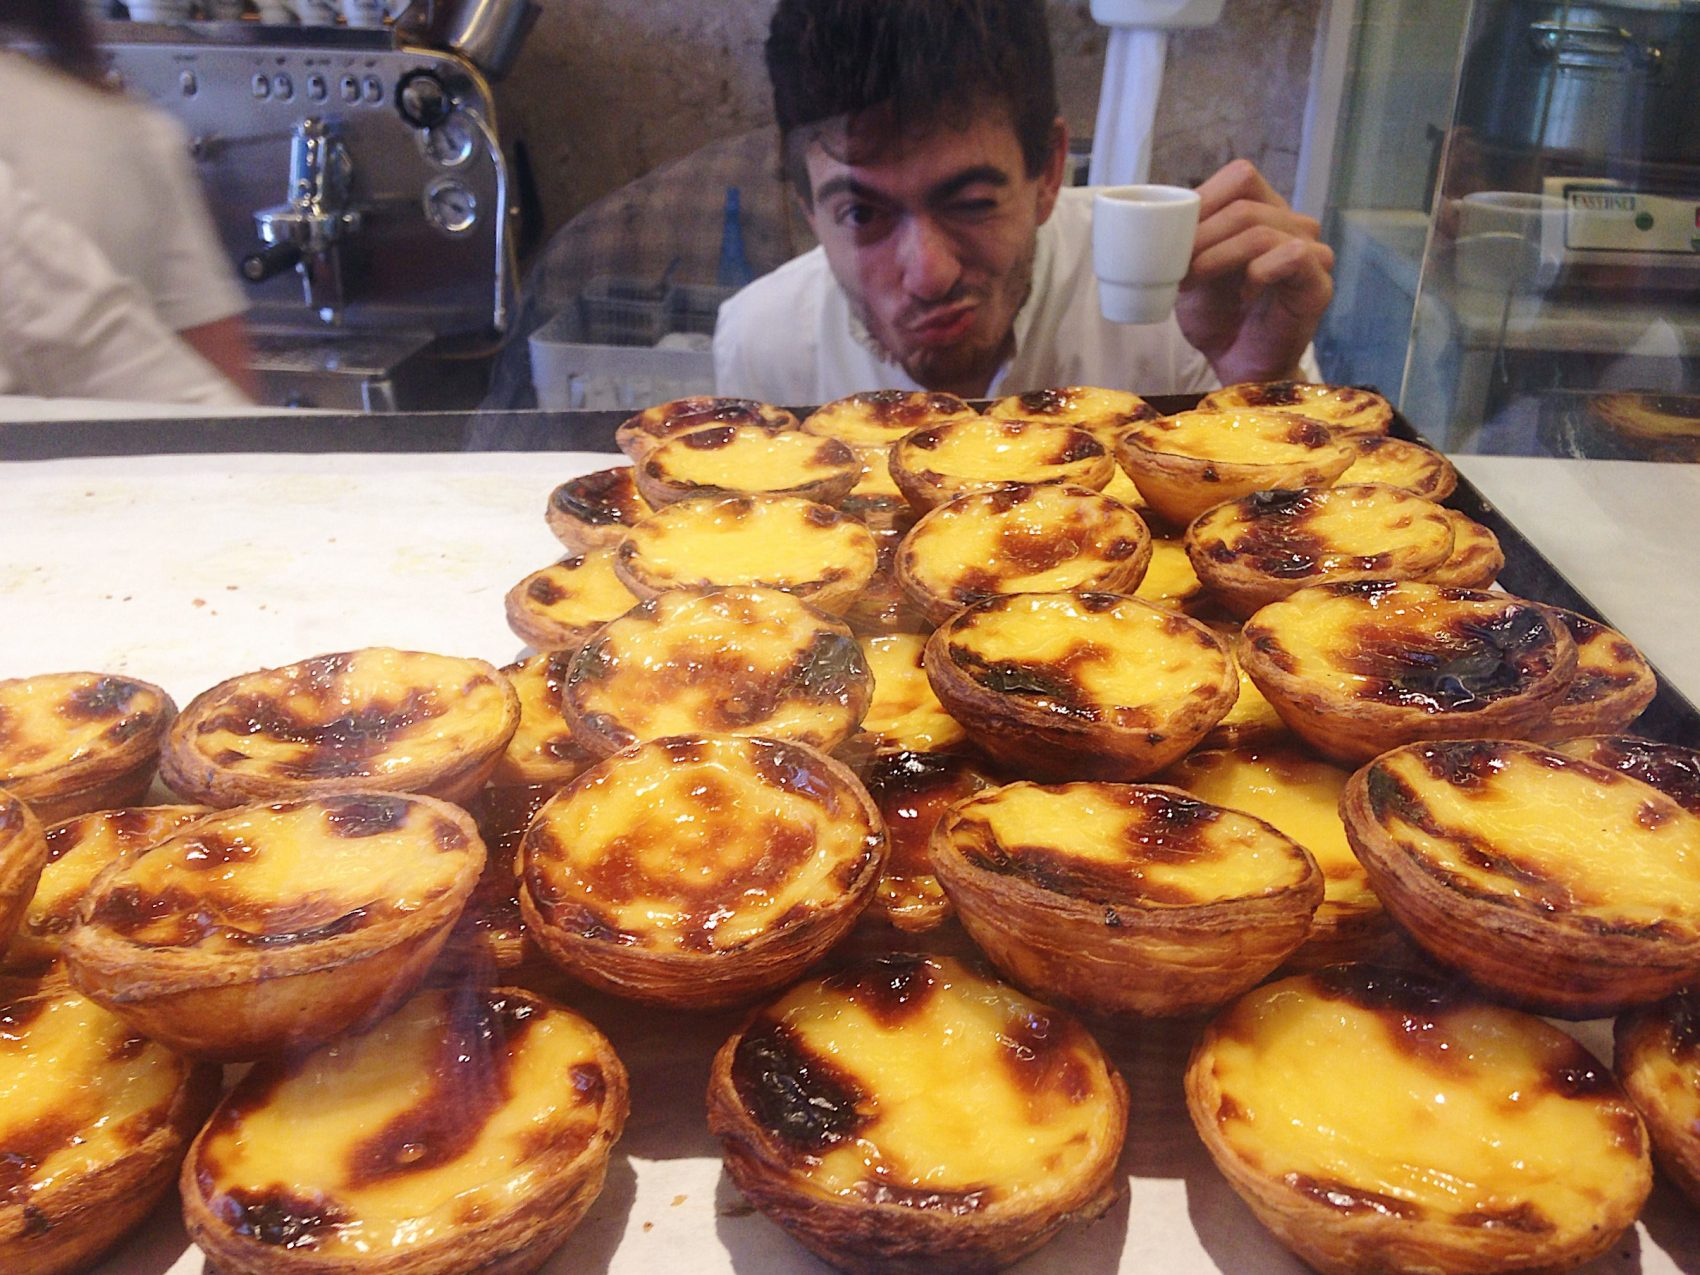 Portugal Wine Travel Guide. Pastel Da Nata pastry